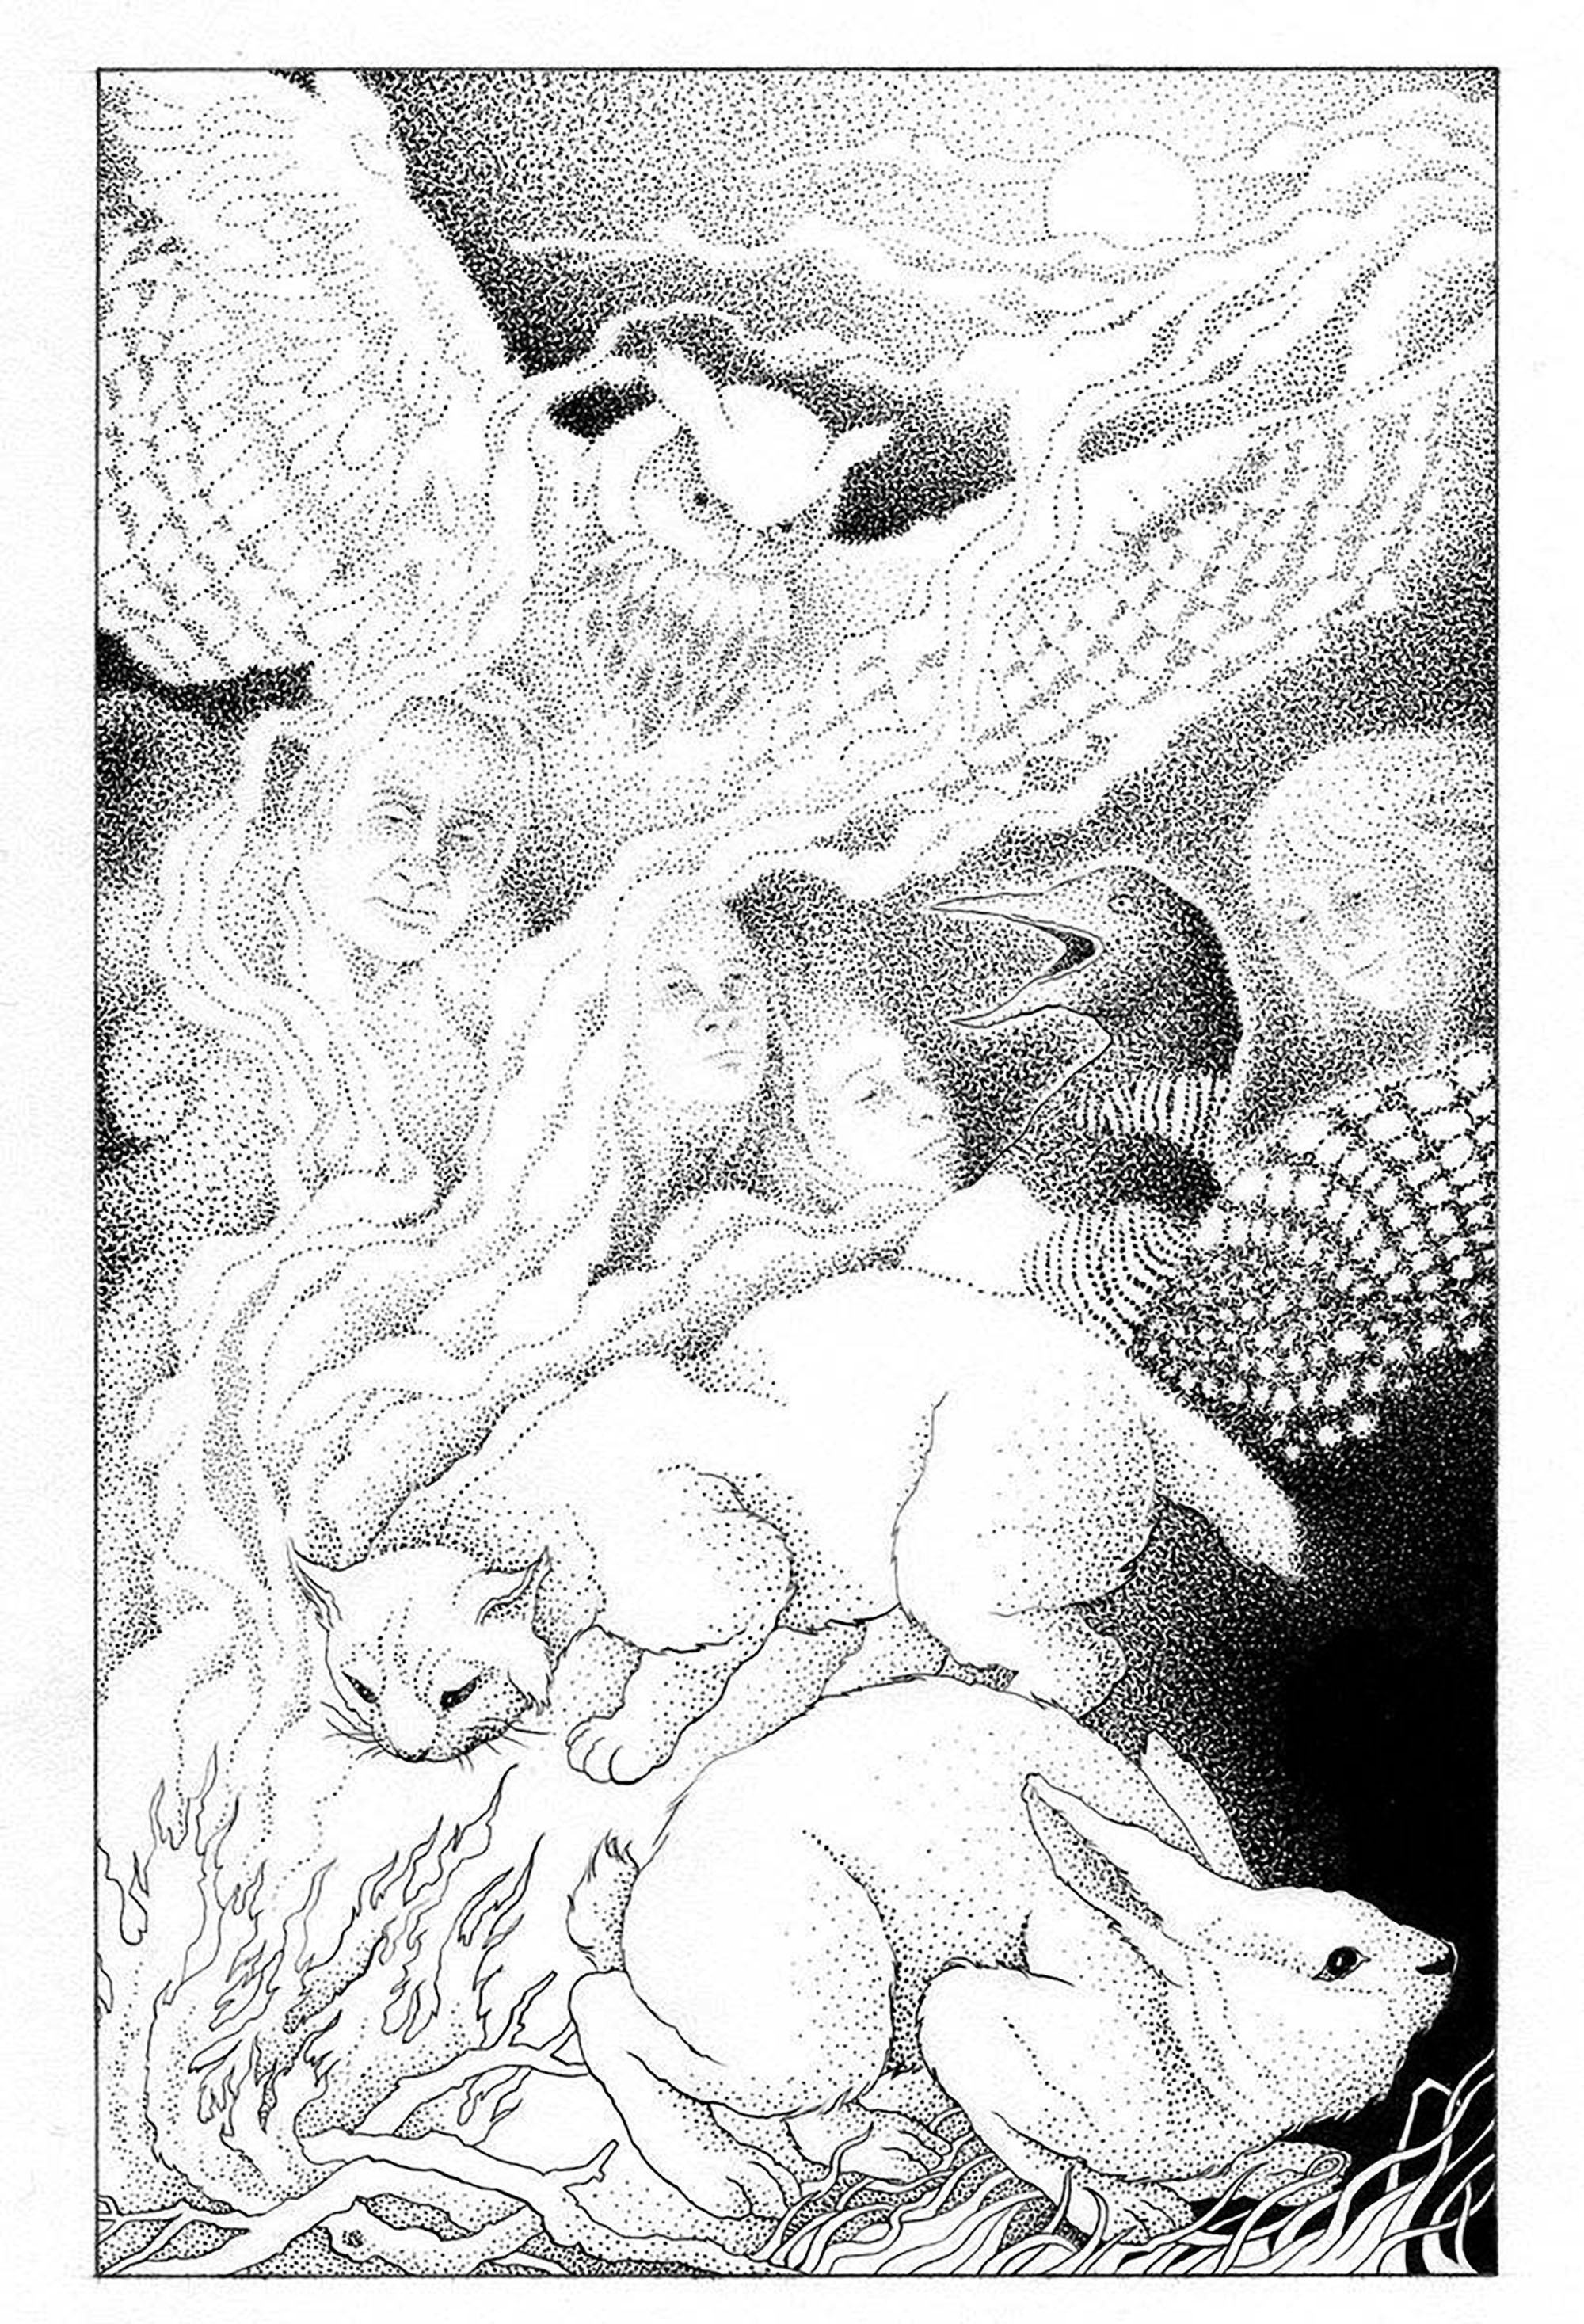 Coloring page animals and spirits marc coyle